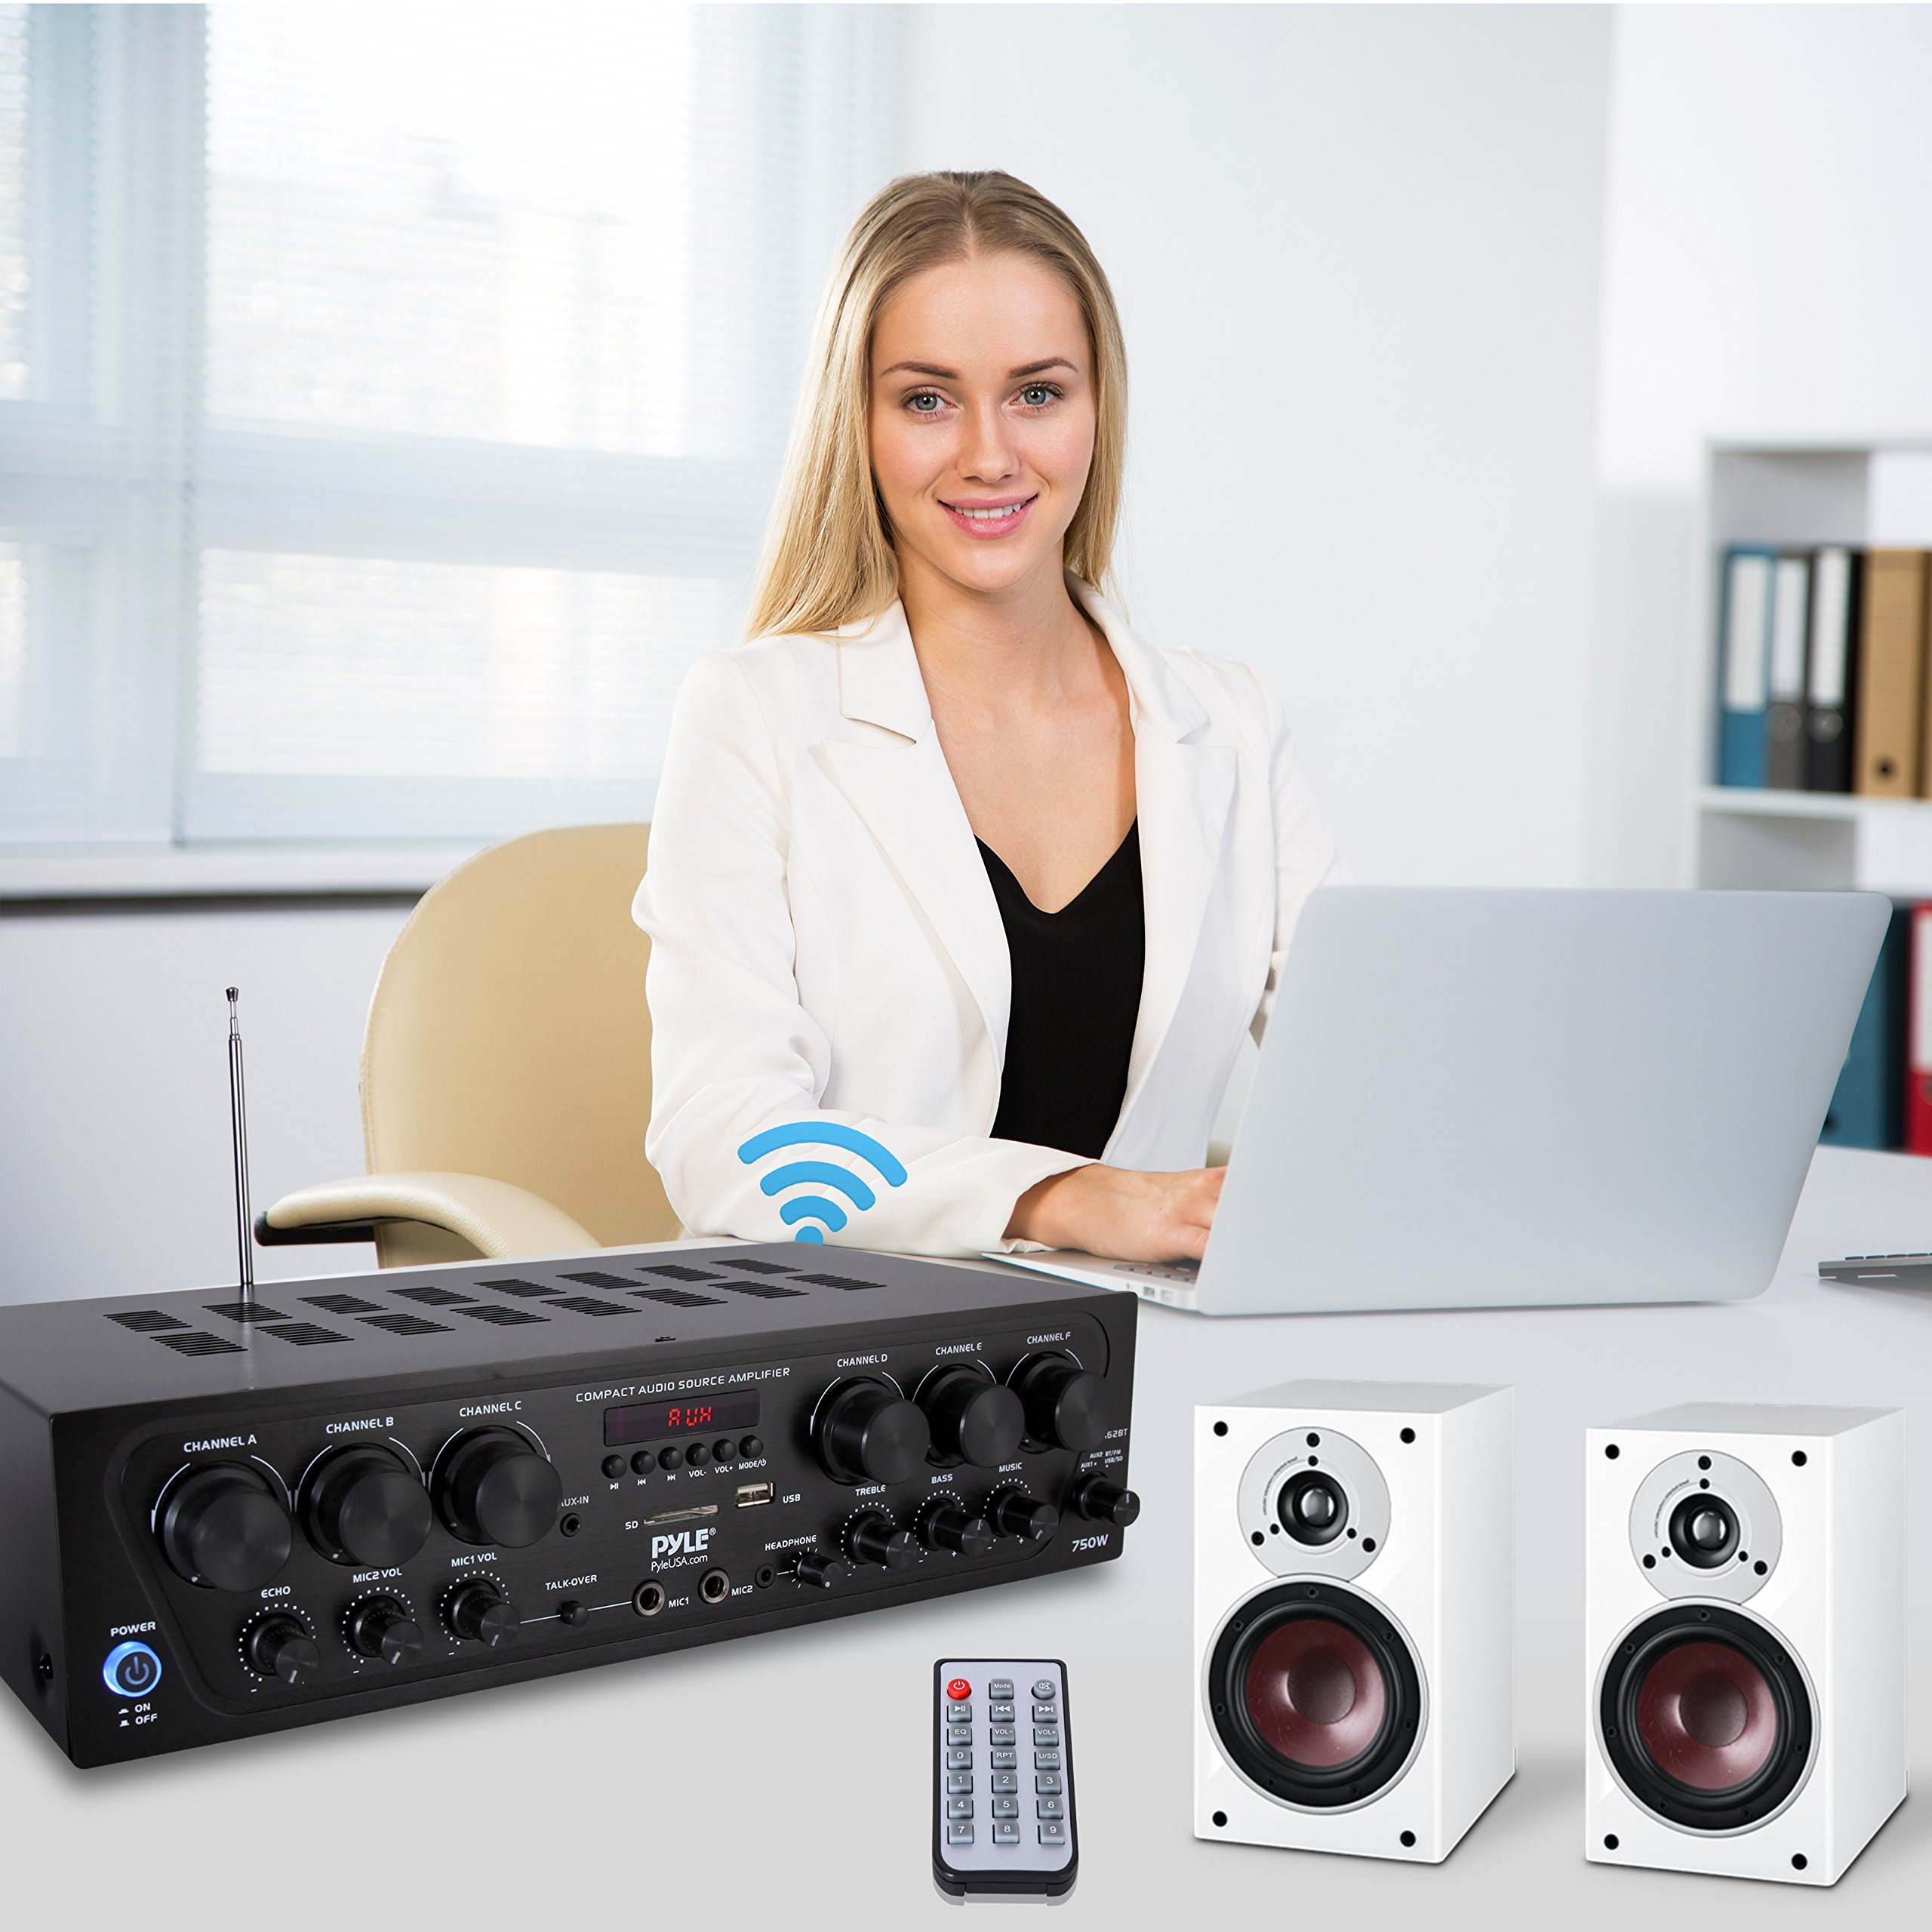 Bluetooth Home Audio Amplifier System - Upgraded 2018 6 Channel 750 Watt Wireless Home Audio Sound Power Stereo Receiver w/ USB, Micro SD, Headphone, 2 Microphone Input w/ Echo, Talkover for PA - Pyle by Pyle (Image #6)